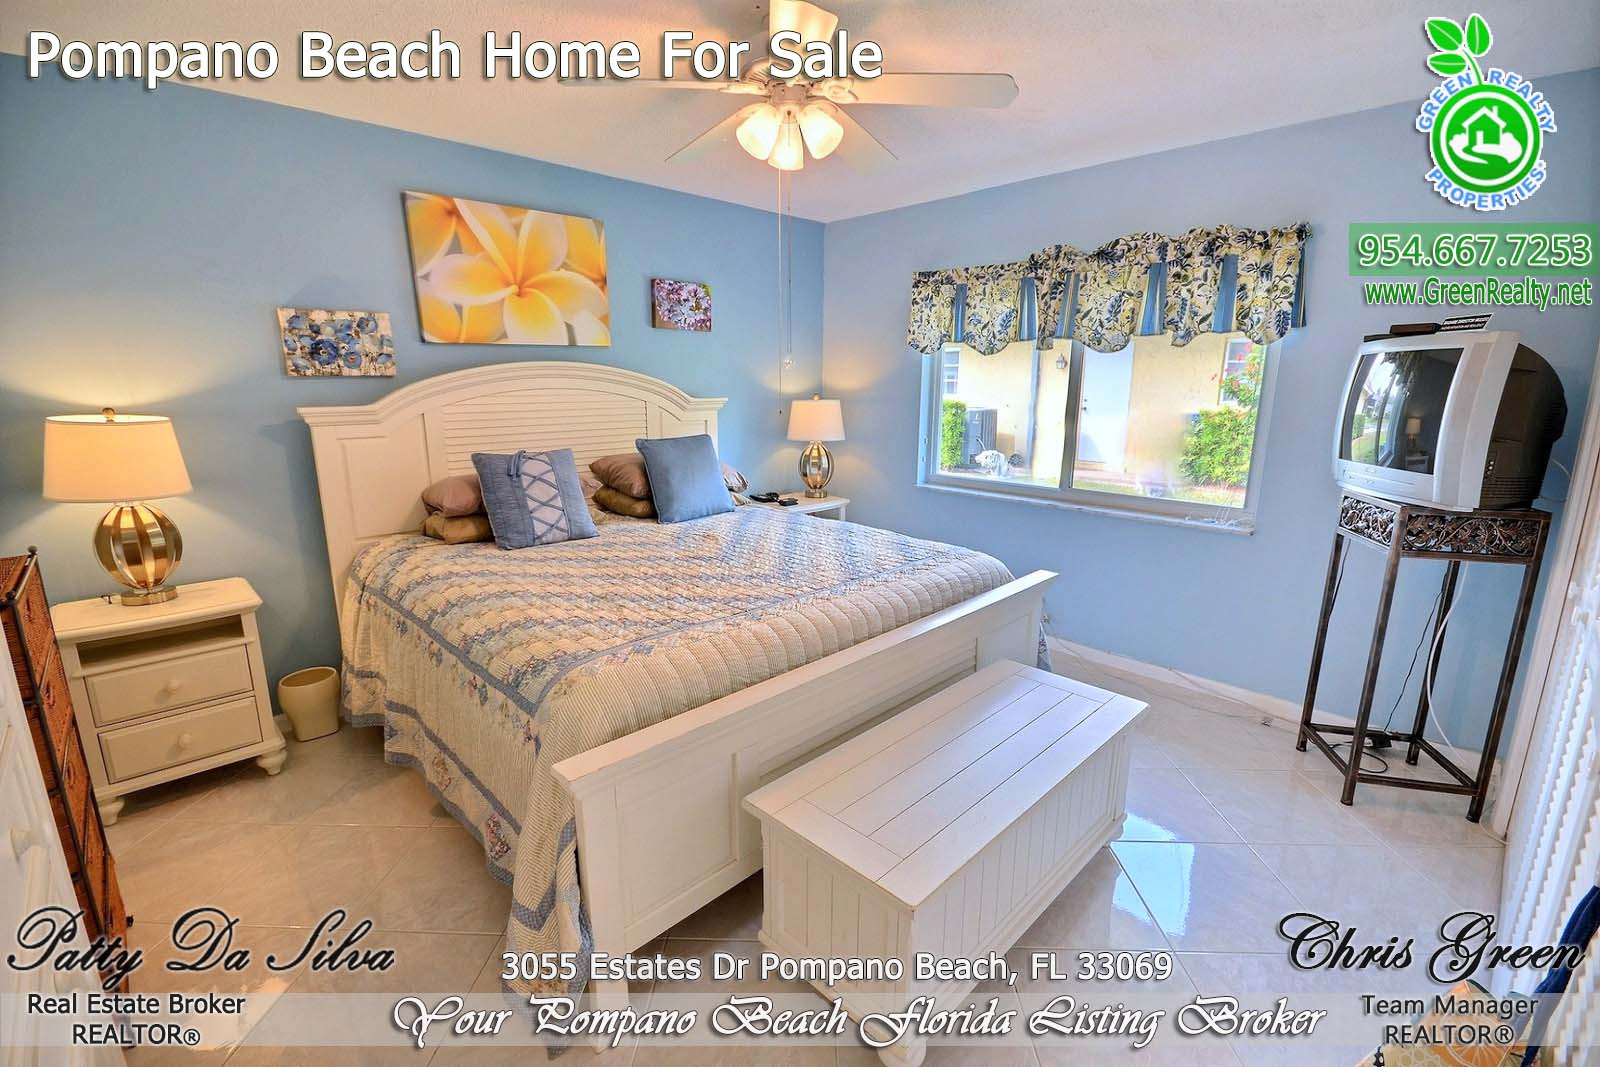 21 Patty Da Silva SELLS Pompano Beach Homes (1)